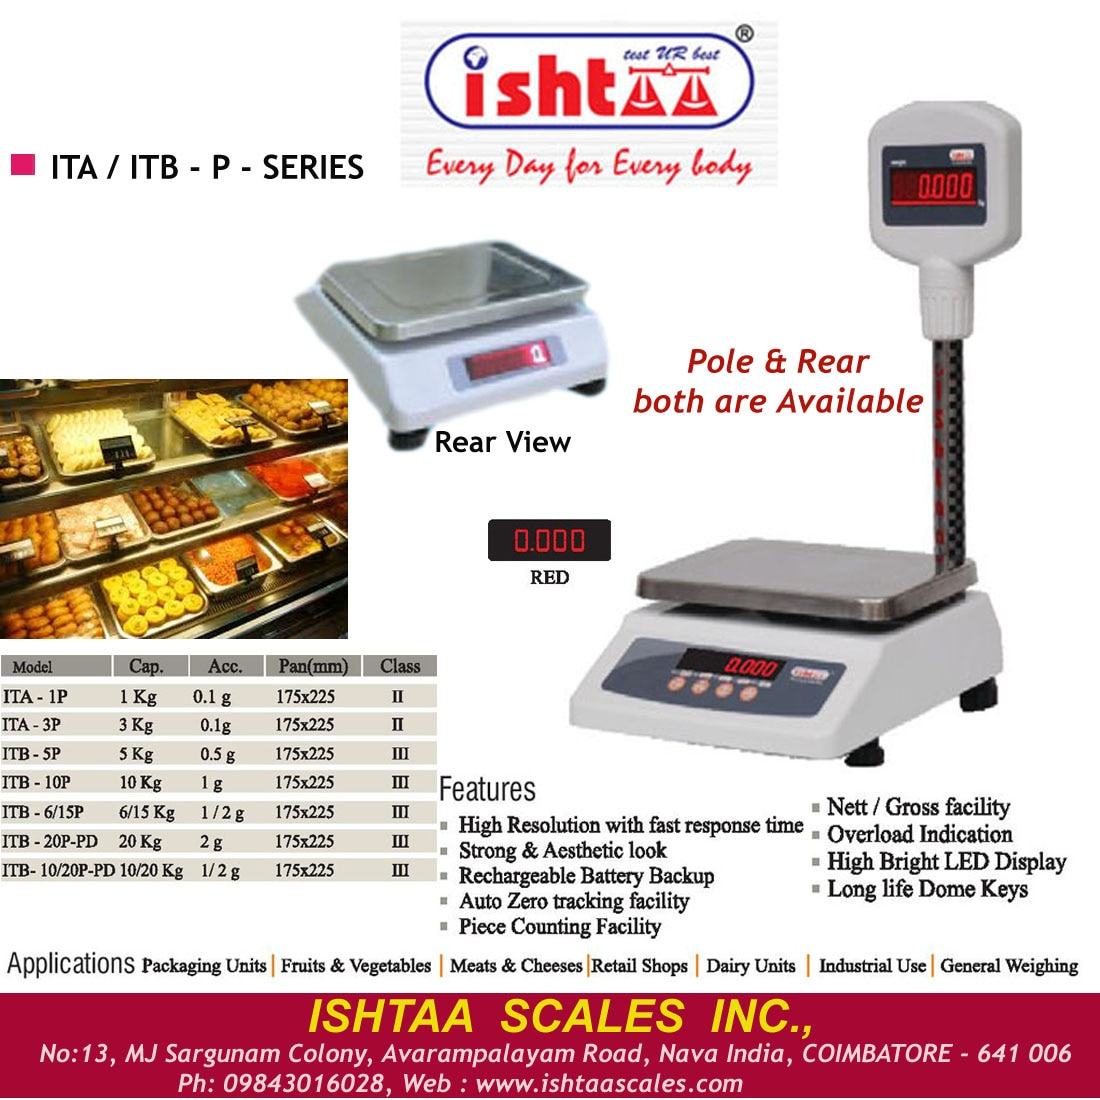 Ishtaa - ITB – P Series Capacity: 1Kg, 3Kg, 5Kg, 3/6Kg, 10 Kg, 6/15 Kg                   20 Kg, 10/20 Kg Accuracy : 0.1g, 0.5g, 0.5/1g, 1g, 1/2g, 2 g  Pan Size : 175 x 225 mm Body: Metal + ABS Display: LED 0.56mm ( Red )  #Parcelweighingscale #Dairyunitsweighingscale #Meatsweighingscale #Retailshopweighing #Fruitsweighingscale #Vegetableweighingscale #Silverornamentsweighing #Silvershopweighing #PieceCountingWeighing  #HardwareShopWeighing #BakeryWeighingScale #SweetshopWeighingScale #PickleWeighing #1to20KgWeighing #Batteryoperatorweighing  #IshtaaWeighing  #Scales  #DigitalWeighing  #AccurateWeighing  #AccurateScale  #Weighing  Click here to know more : https://goo.gl/TU5bBt  Contact : 9843016028.